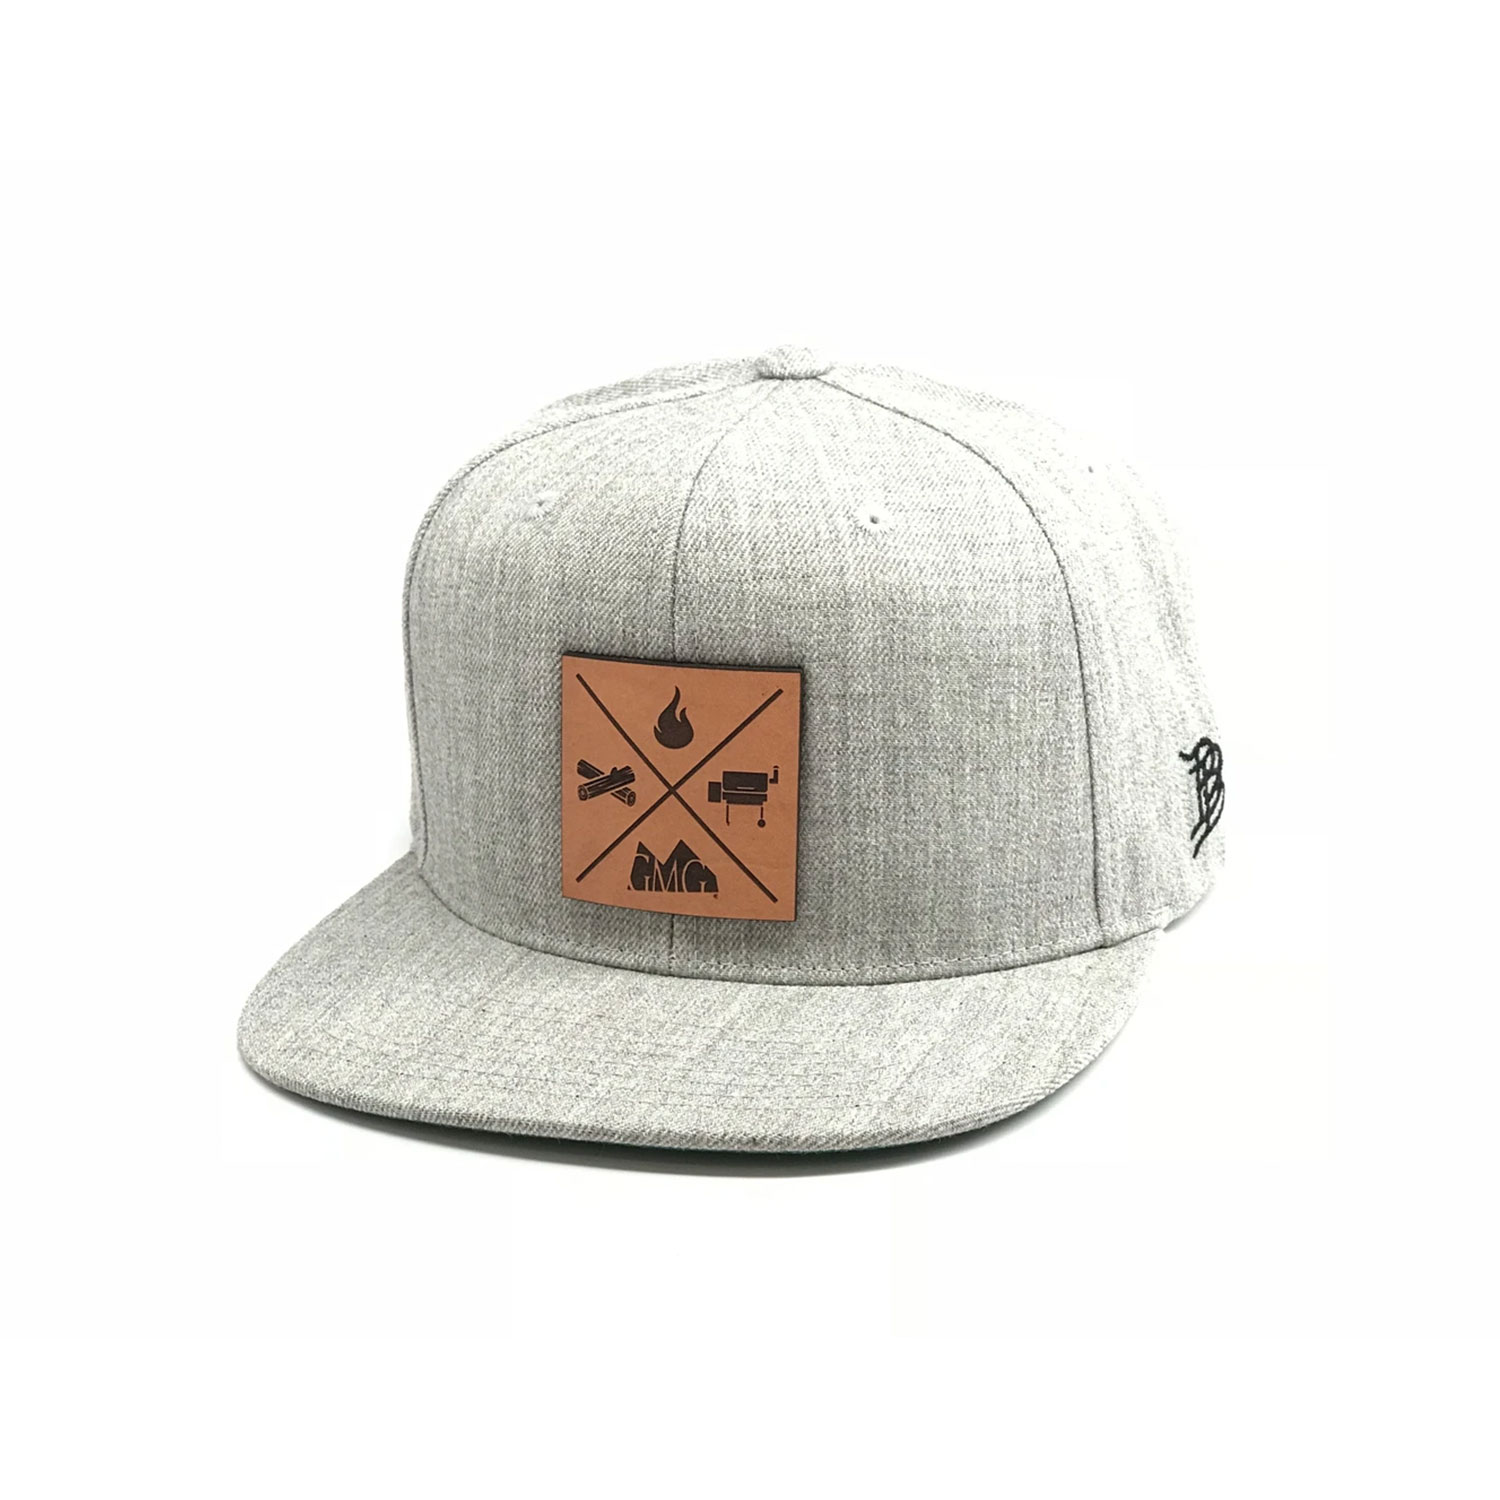 GMG-CLASSIC-SNAP-GREY